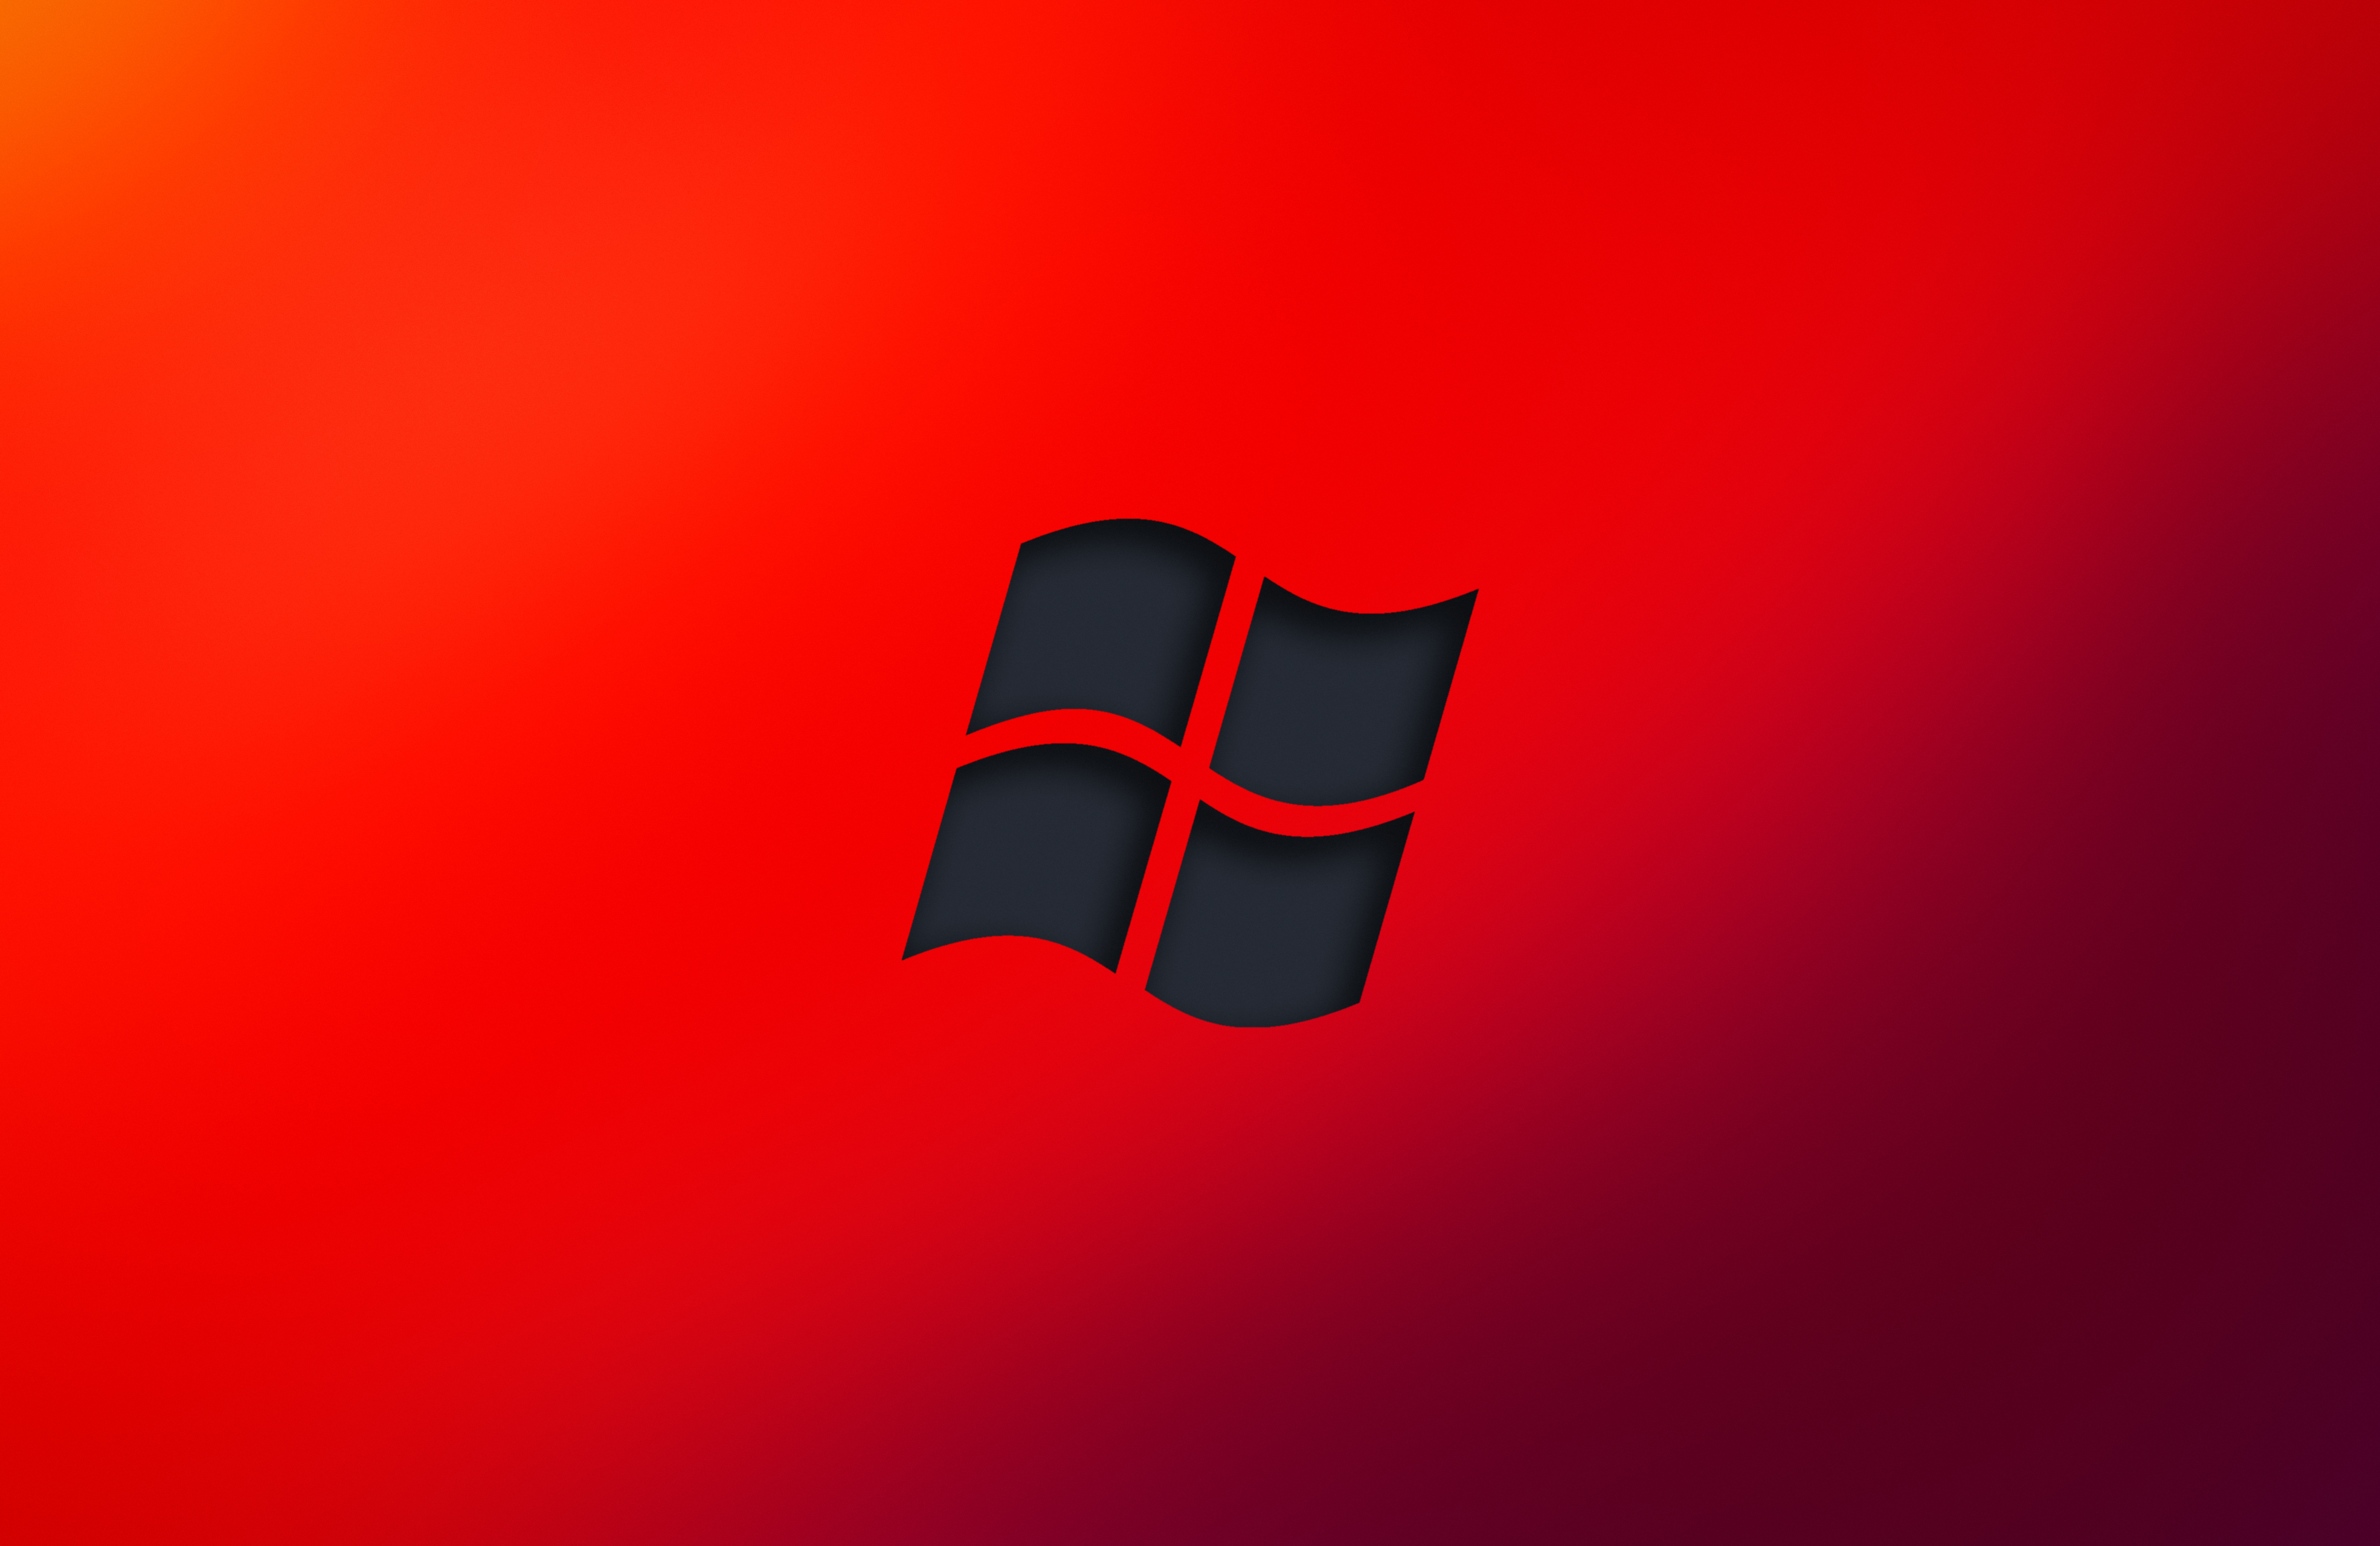 1440x2960 Windows Red Logo Minimal 4k Samsung Galaxy Note 9 8 S9 S8 S8 Qhd Hd 4k Wallpapers Images Backgrounds Photos And Pictures